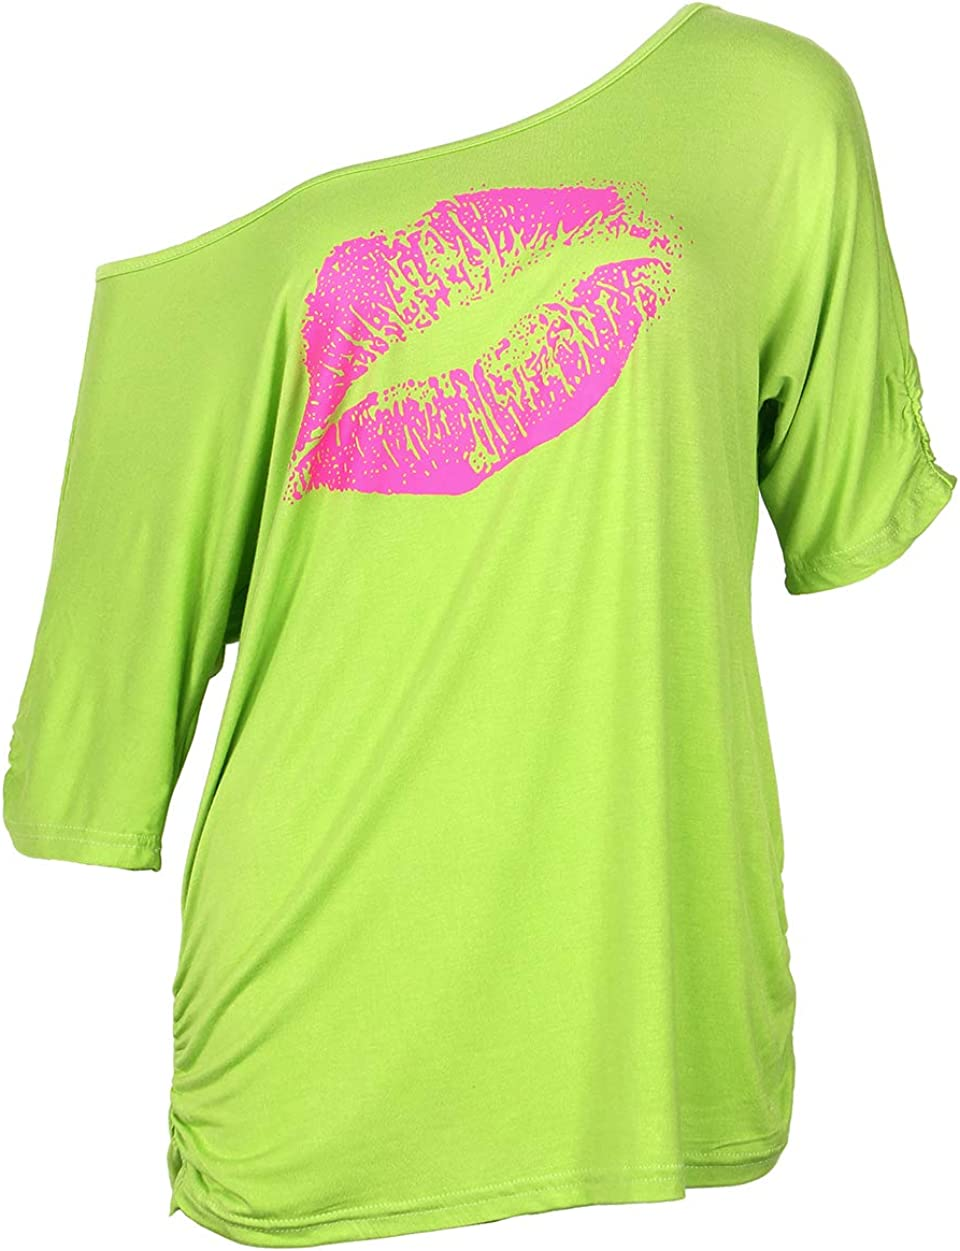 1980s Clothing, Fashion | 80s Style Clothes Smile Fish Women Casual Oversized Sexy Lips Print Off Shoulder T-Shirt $18.99 AT vintagedancer.com